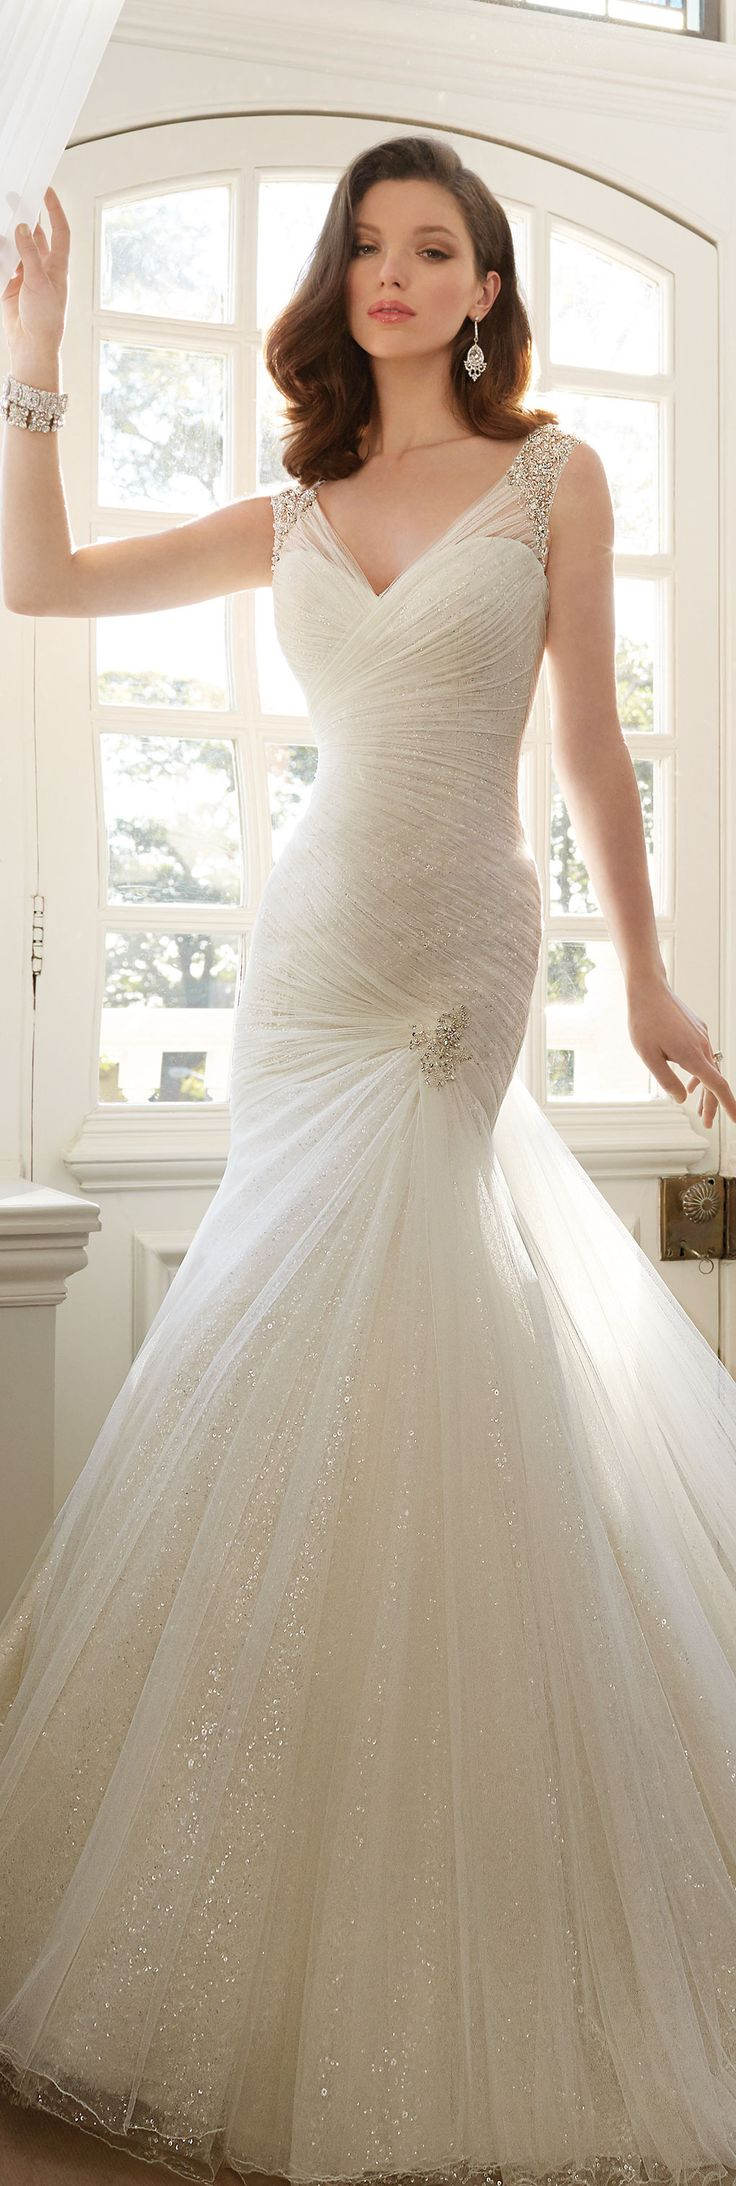 Ecru wedding dress   best Wedding dresses images on Pinterest